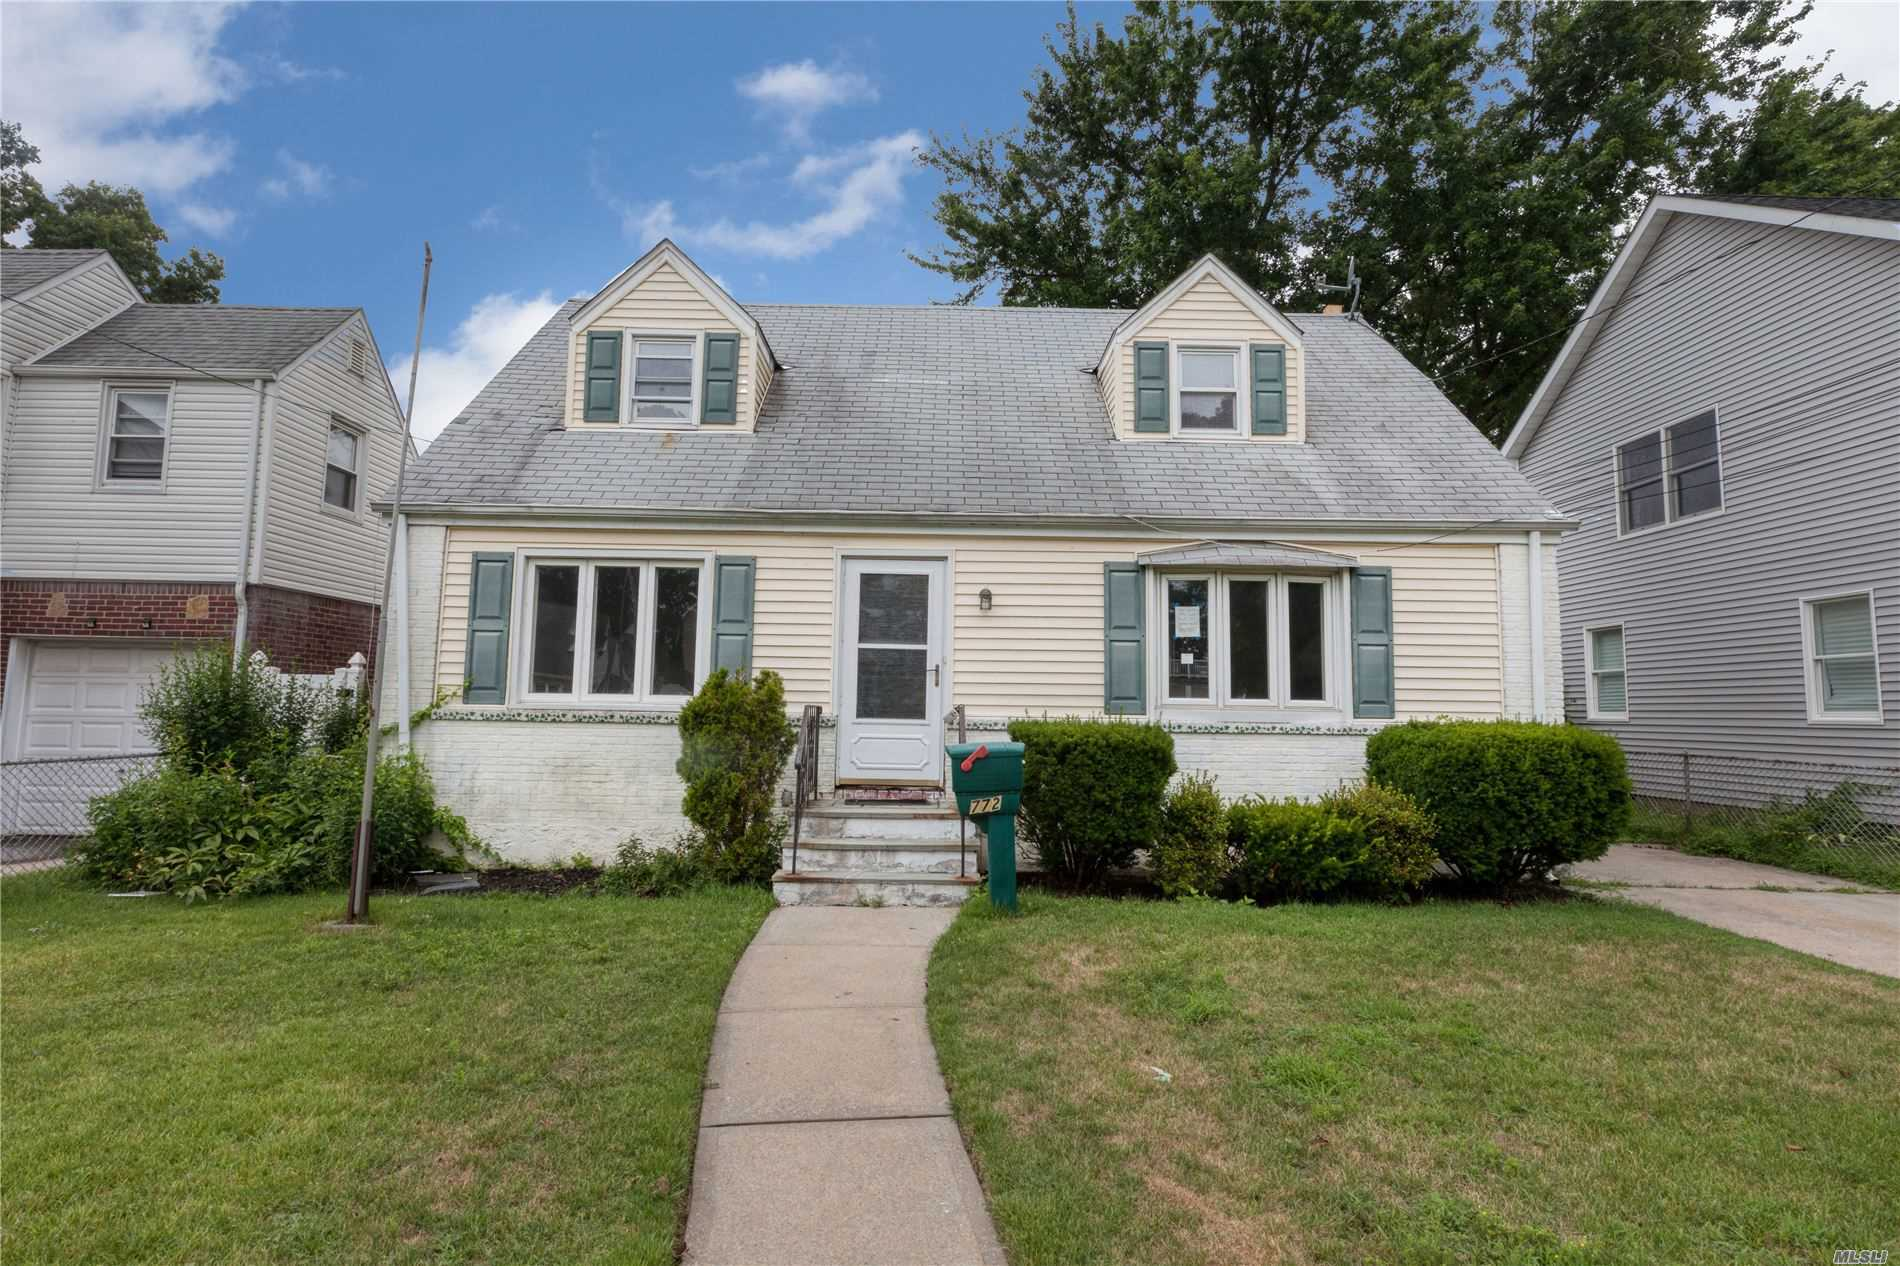 Cape with 3 Bedrooms and 1 bath, Full Basement. Large Backyard with Covered Patio and 1 car detached garage. Close to Shopping, Transportation and Major Roadways